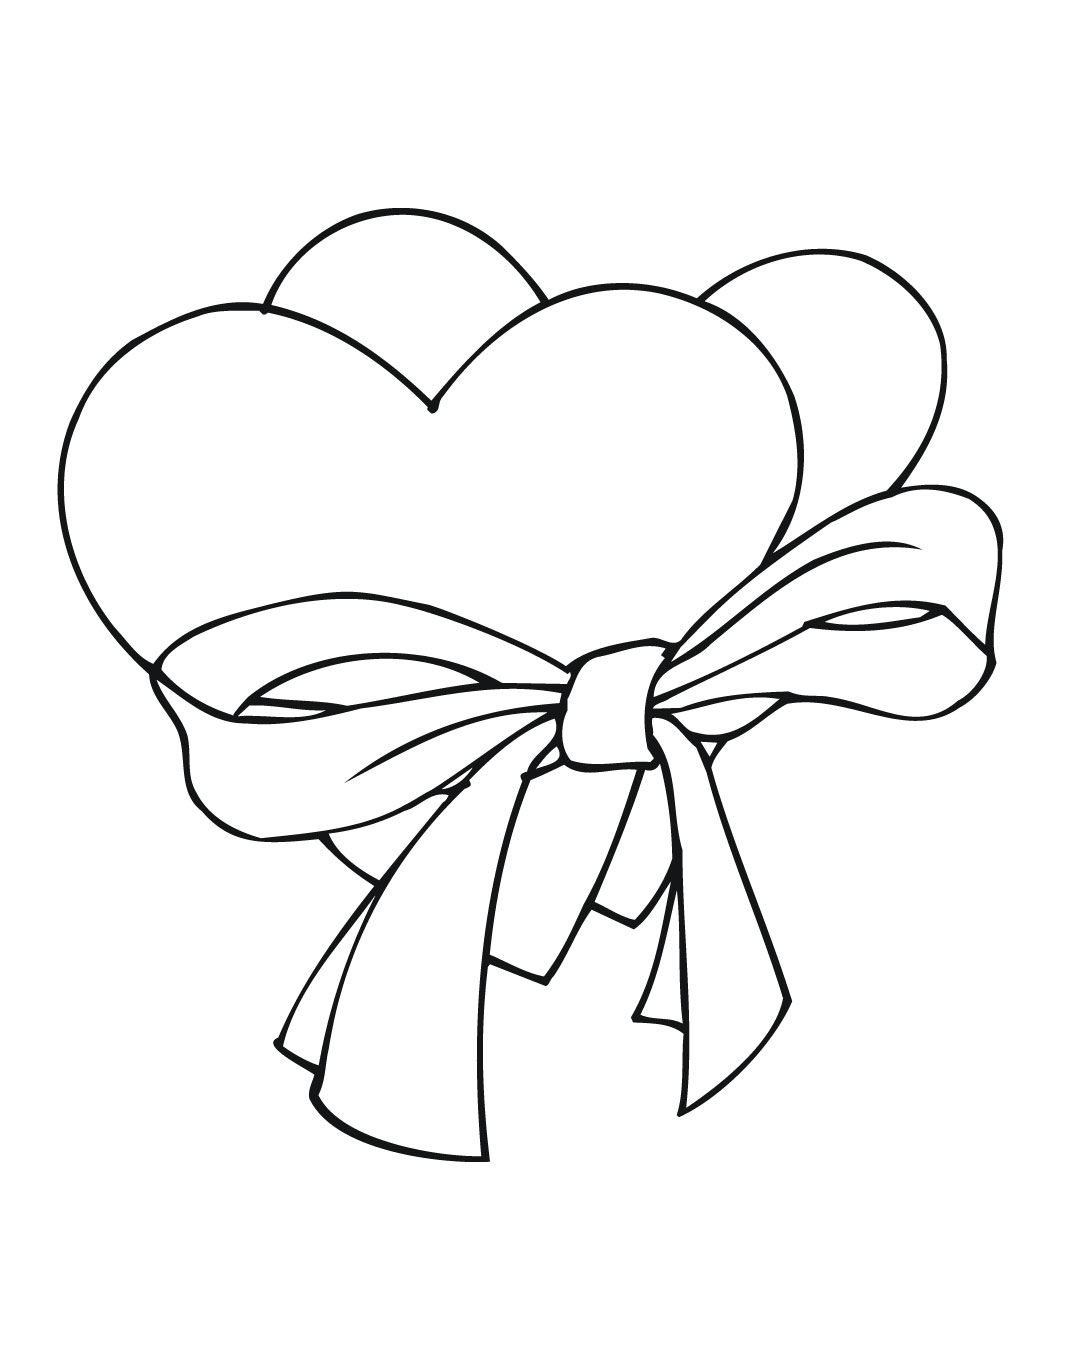 Printable Love Coloring Pages